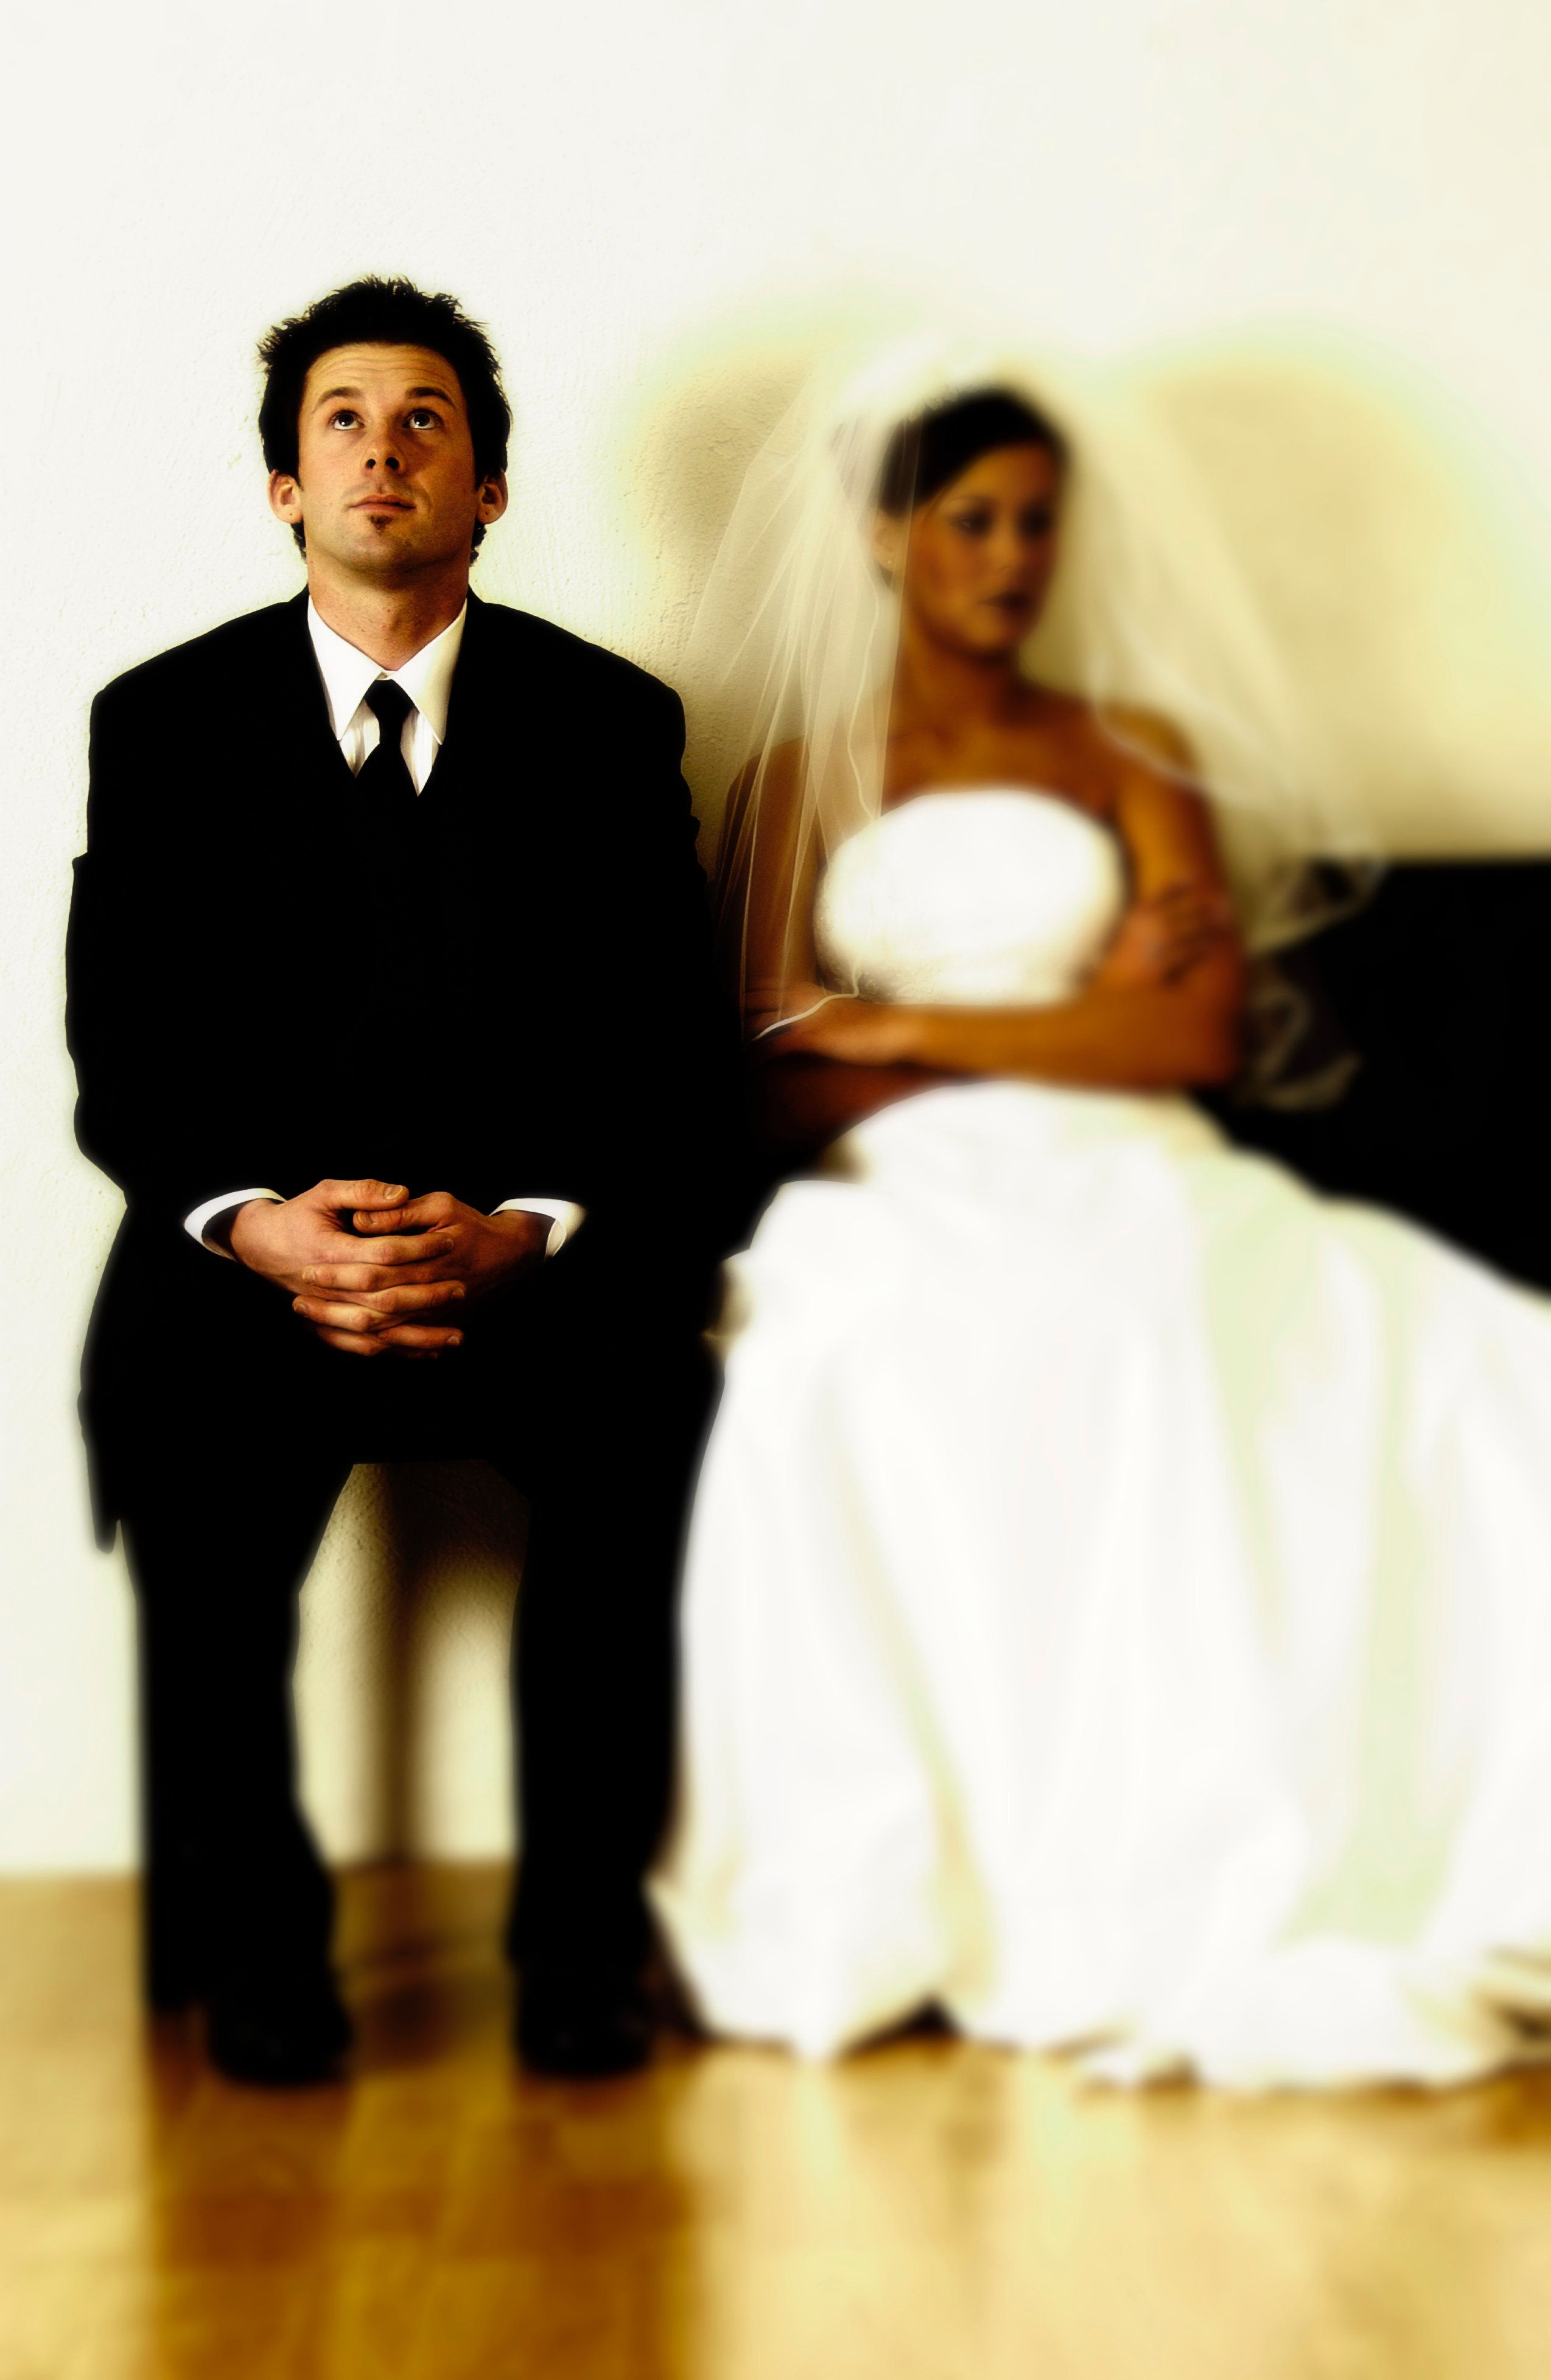 This Dating Marriage No For Until Ready Dianna Galloway